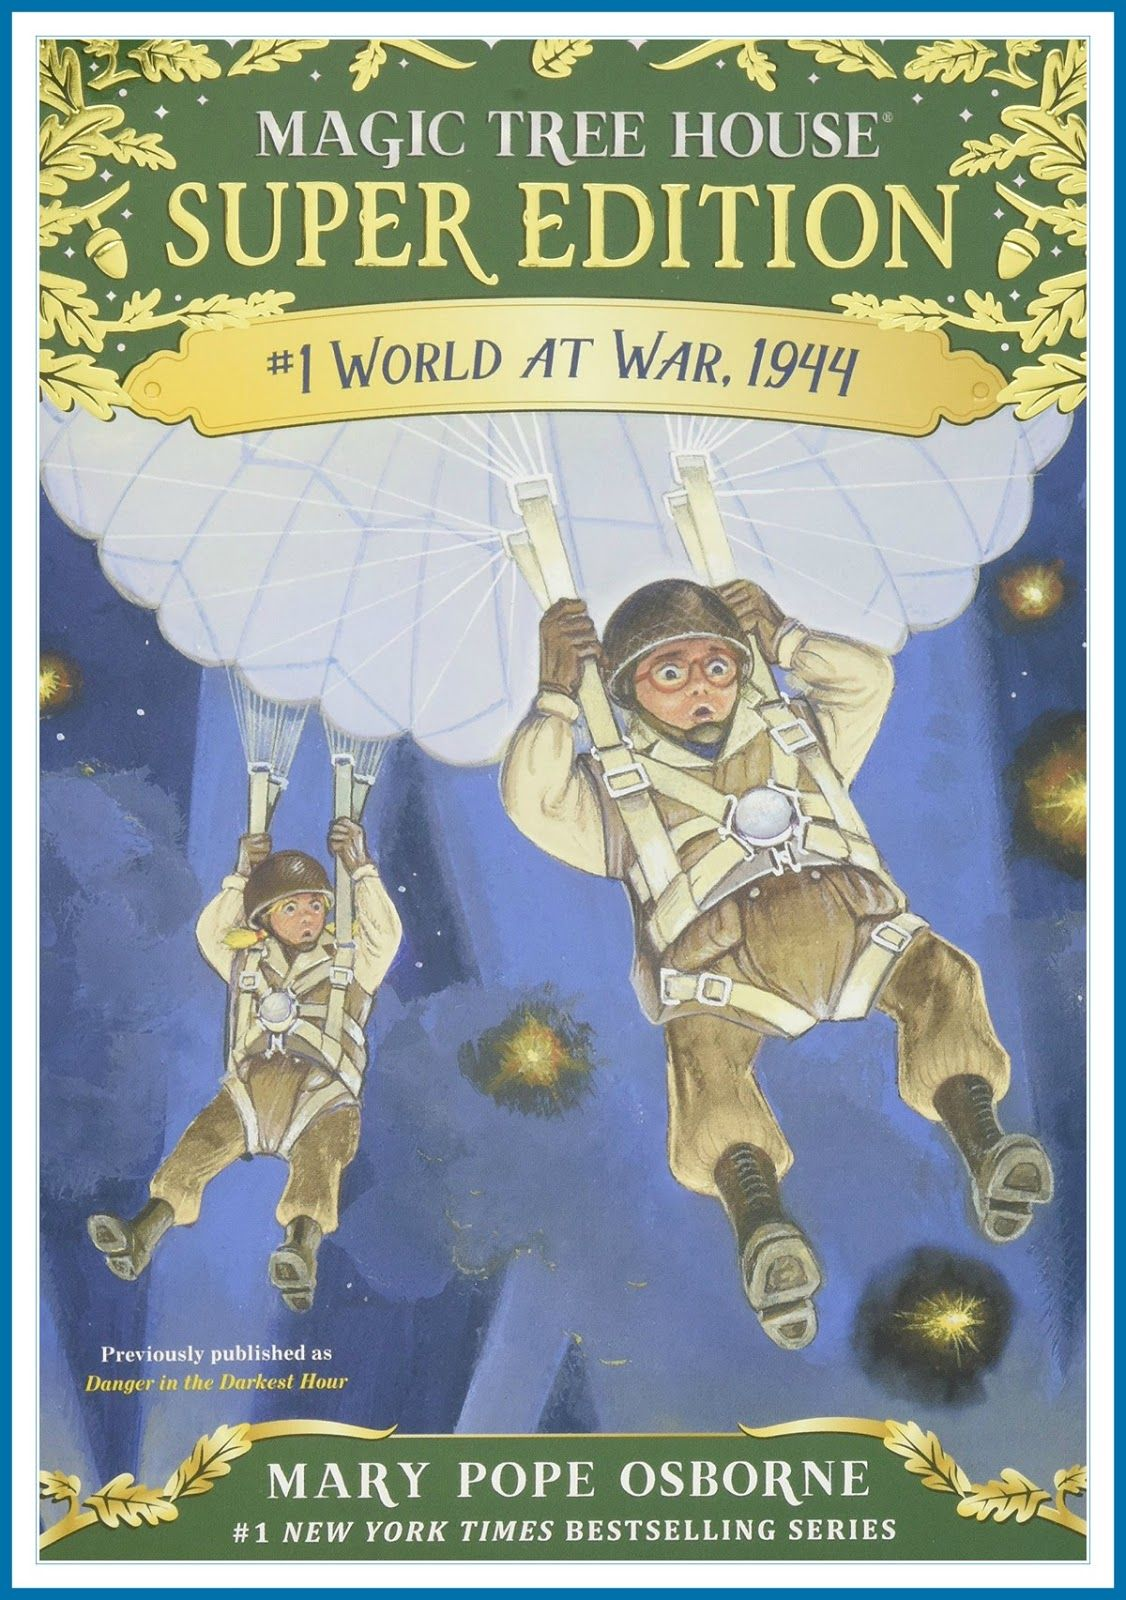 World At War 1944 Review Of A Magic Tree House Super Edition